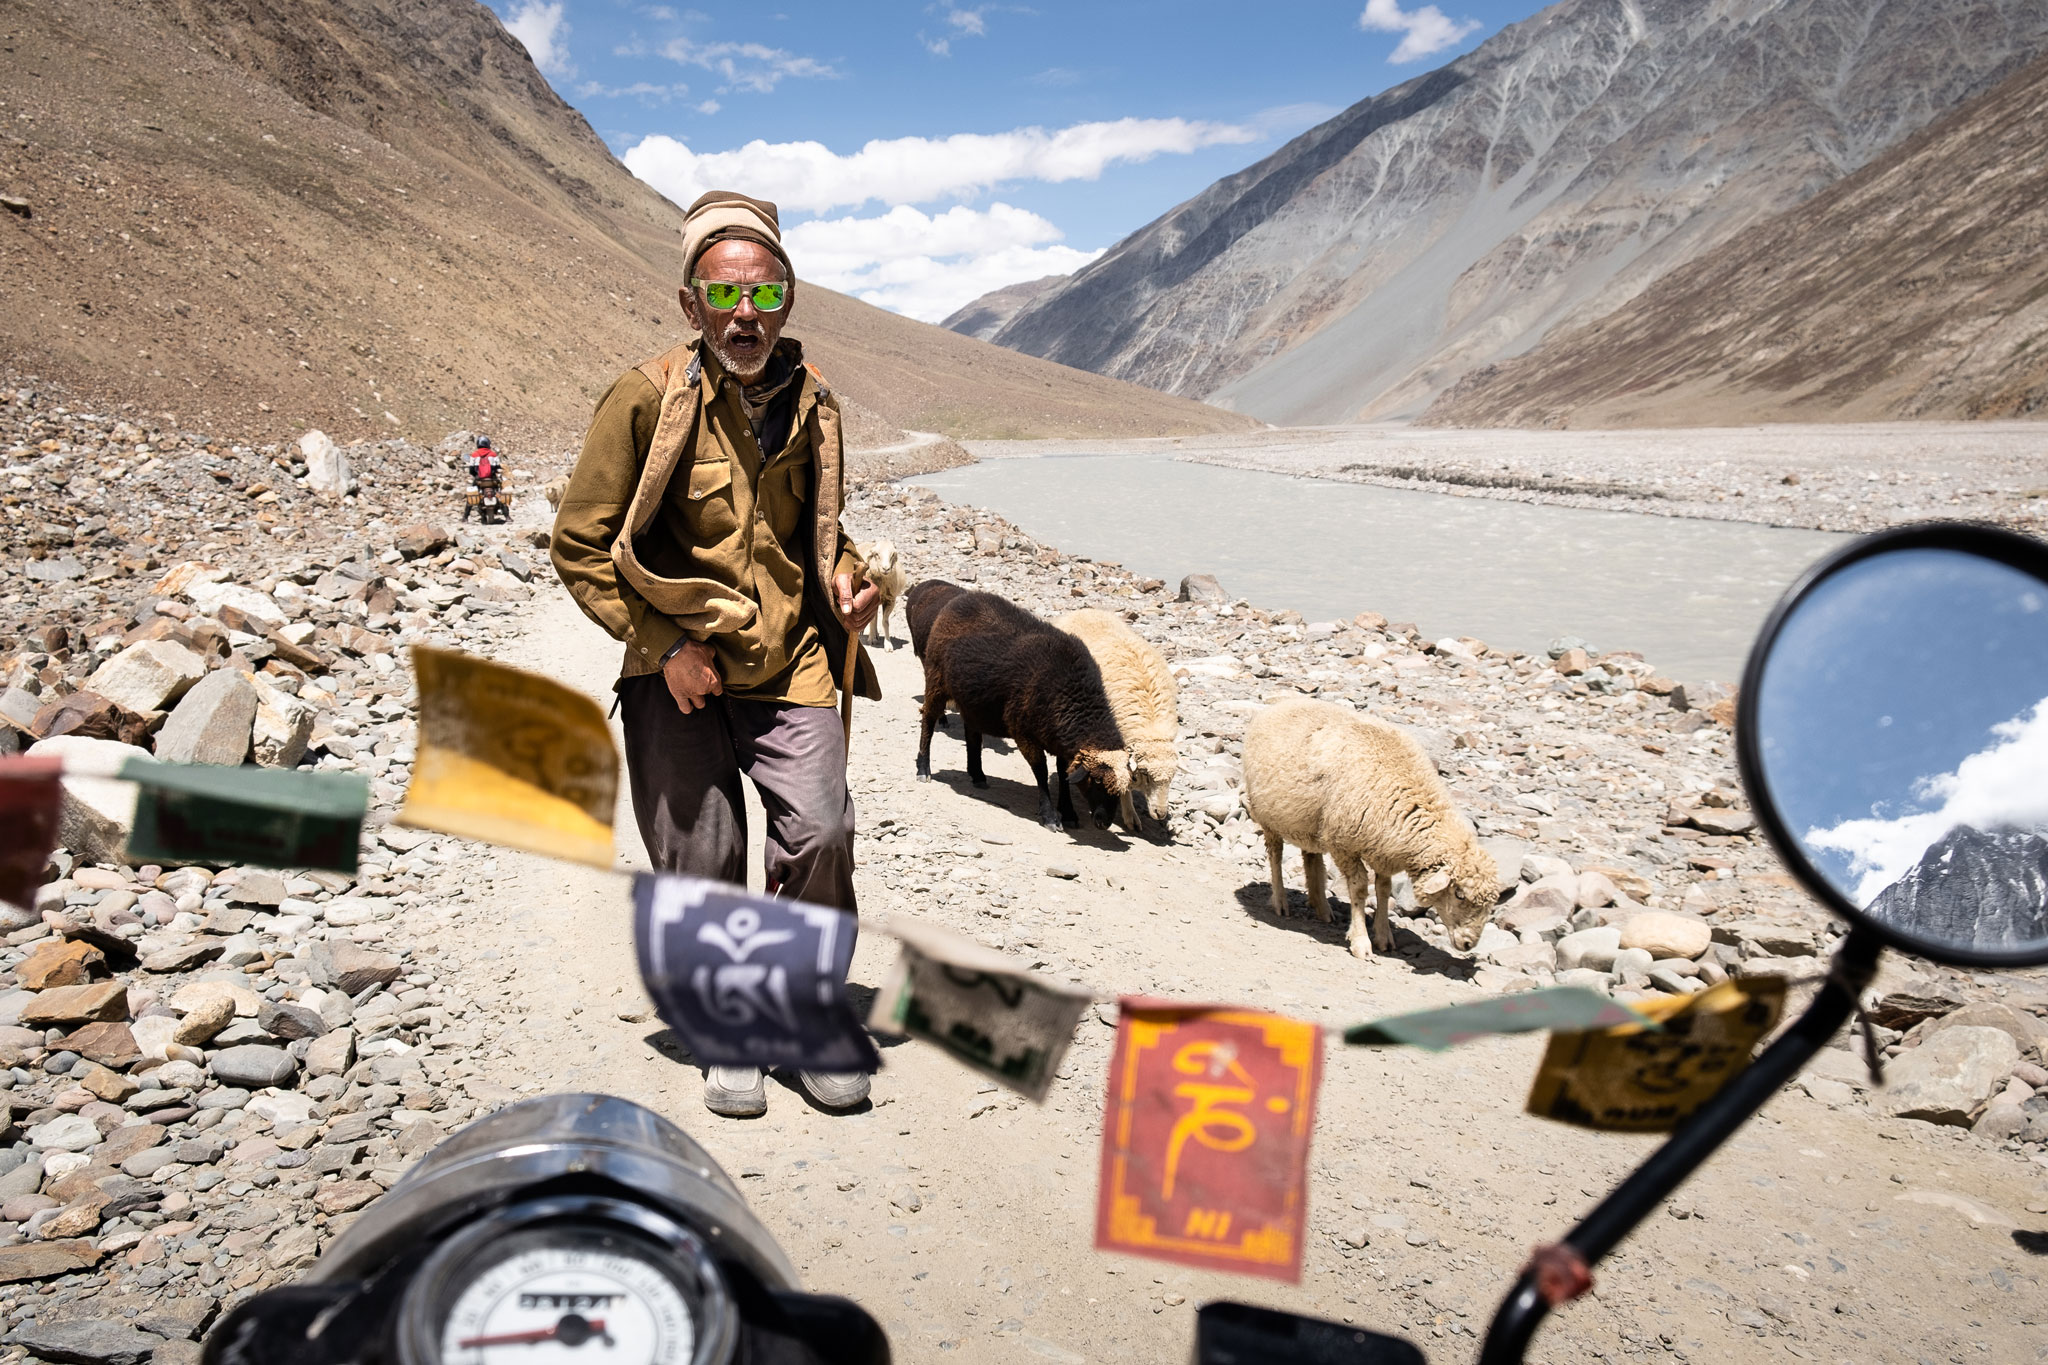 MEETING WITH INDIAN SHEPHERD IN THE SPITI VALLEY